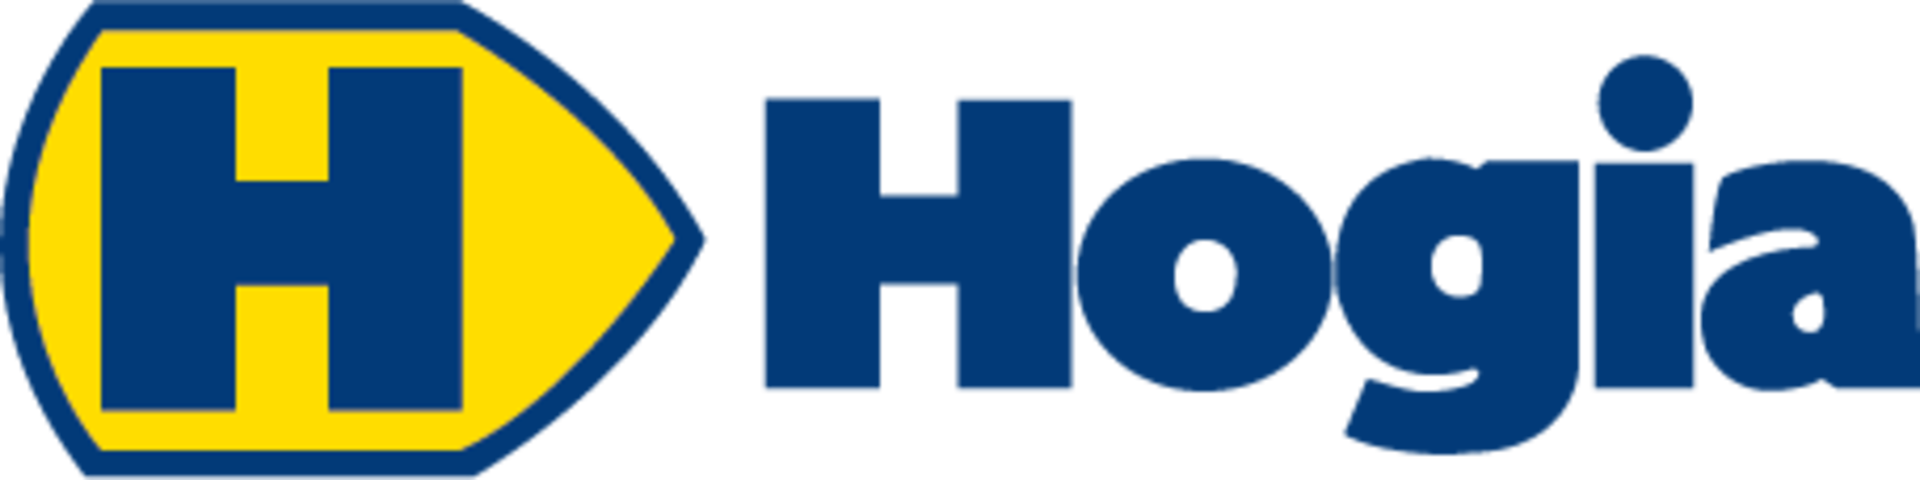 Hogia Transport Systems AS